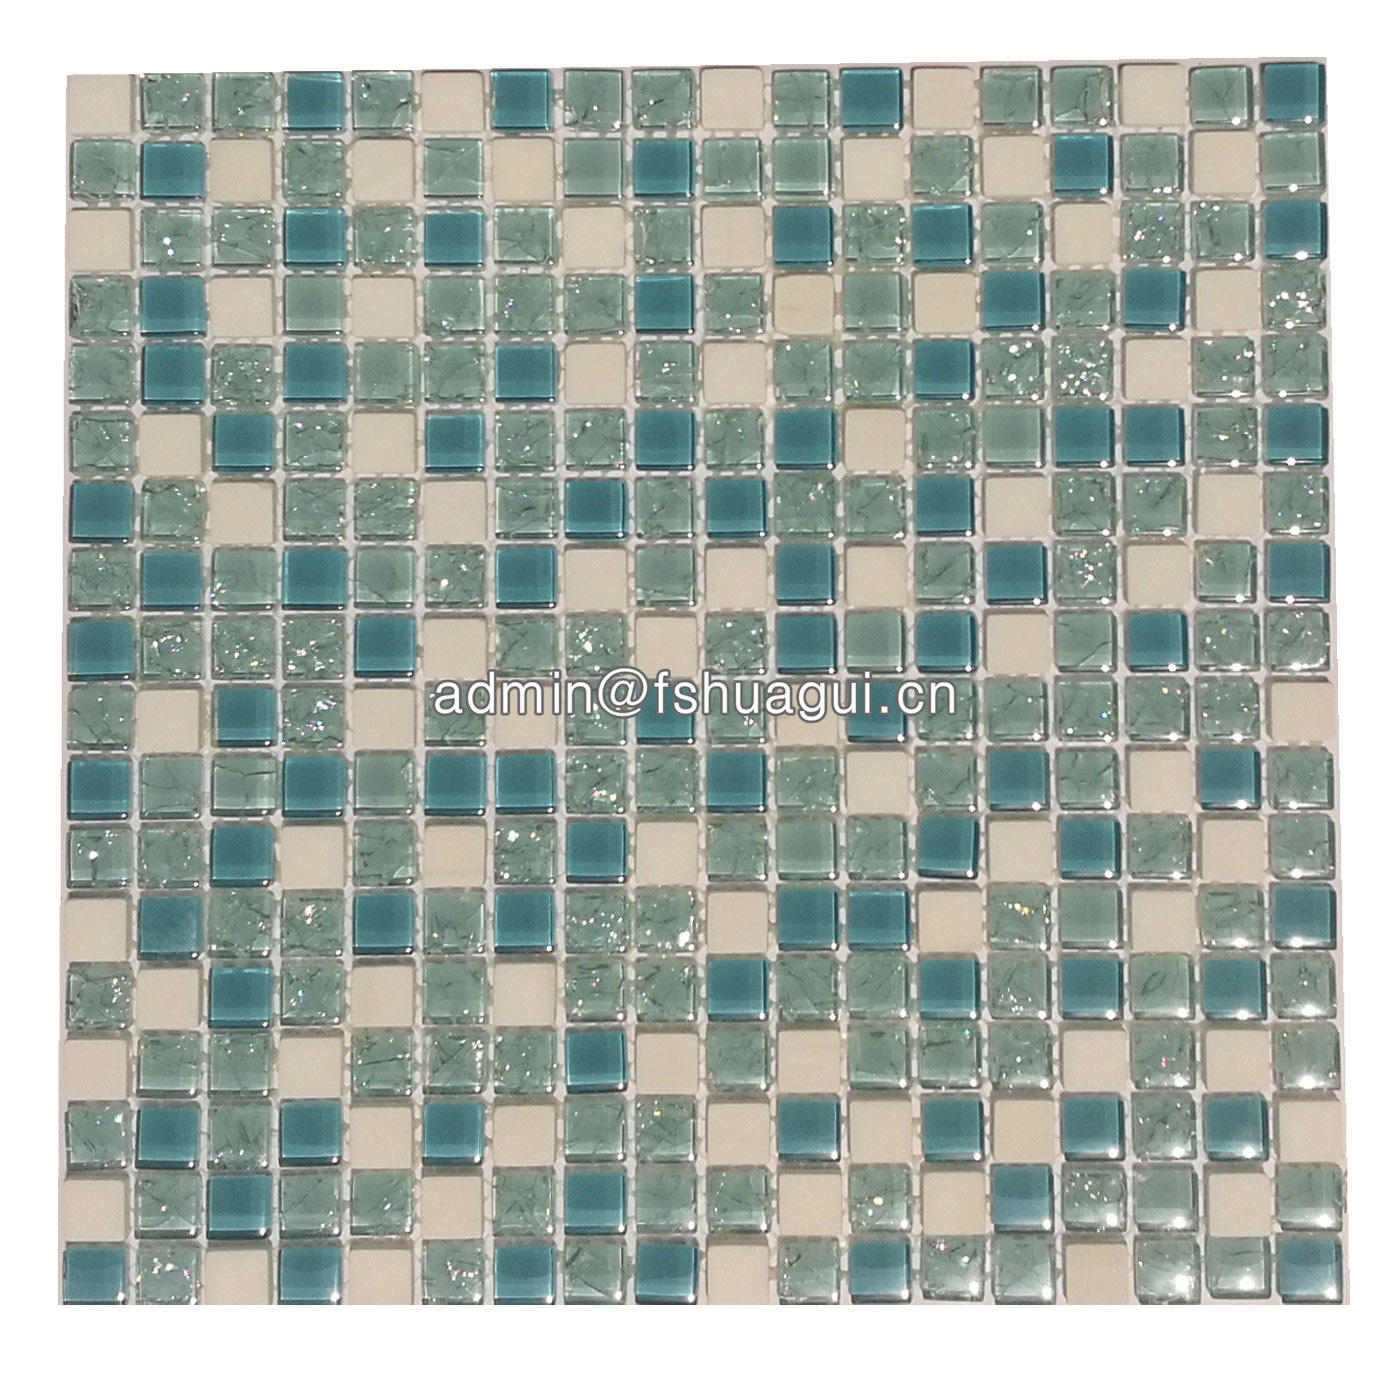 Tiffany blue crackle glass and white stone mosaic tile over cooktop